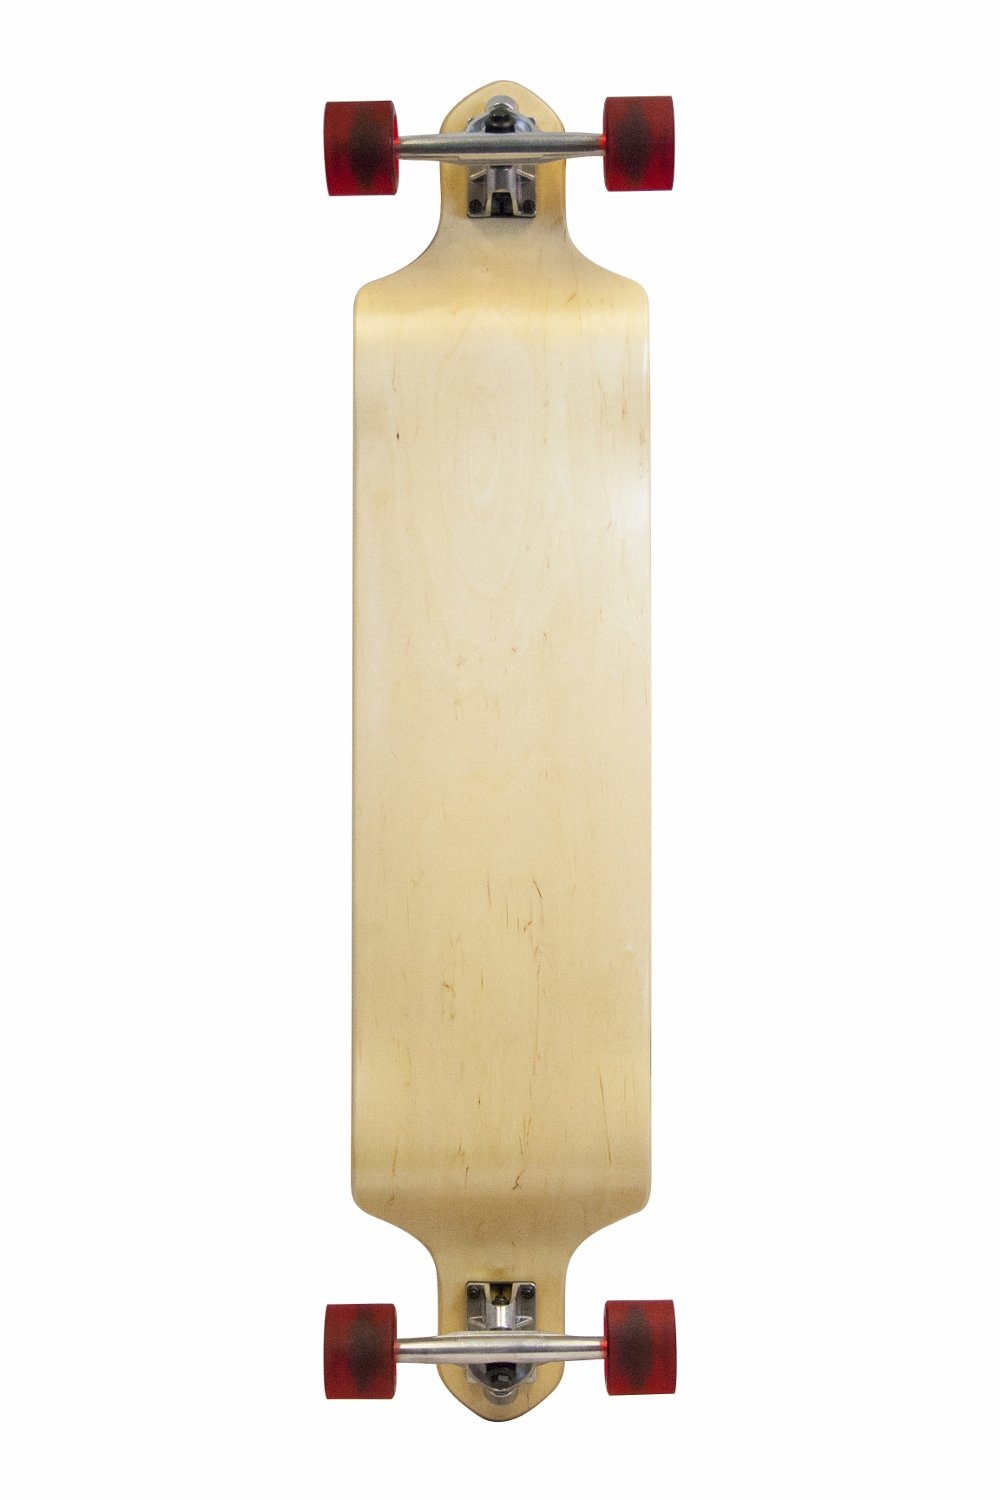 SCSK8 Professional Speed Drop Down/Drop Through Complete Longboards